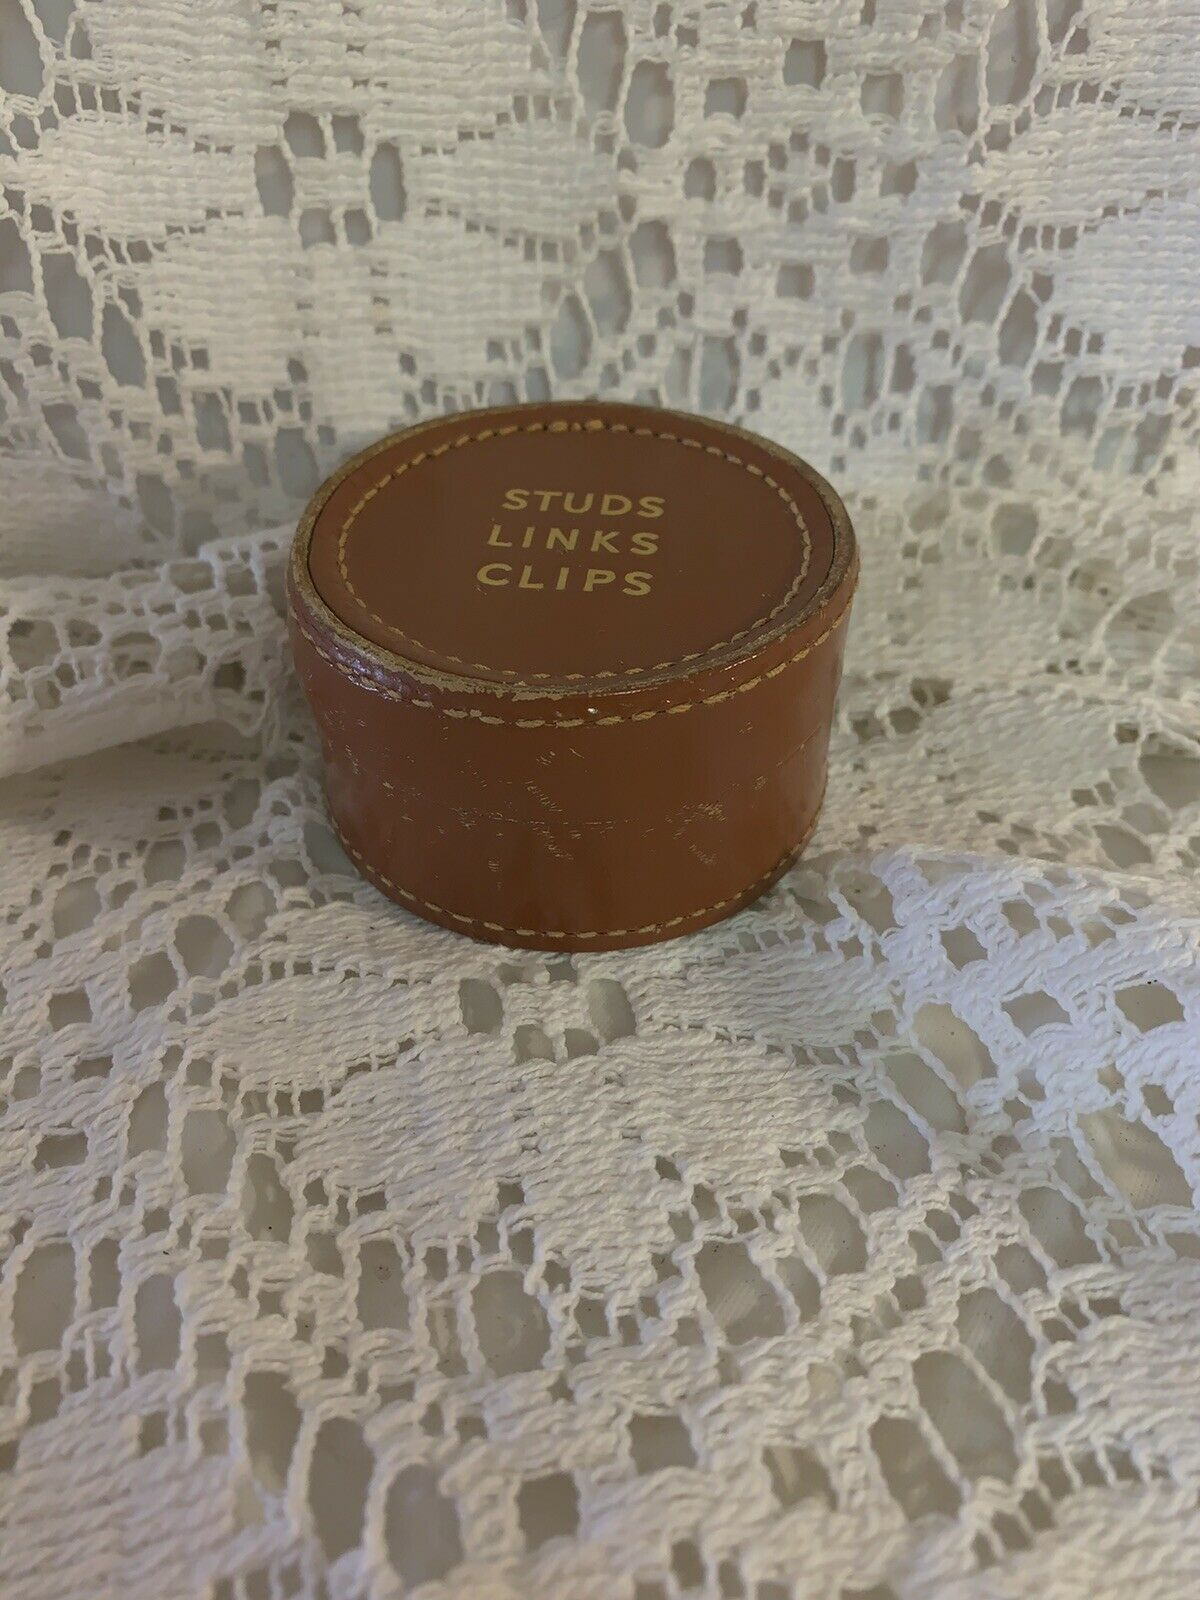 Leather 'Studs Links Clips' Lidded Pot Made In England Vintage Retro Useful